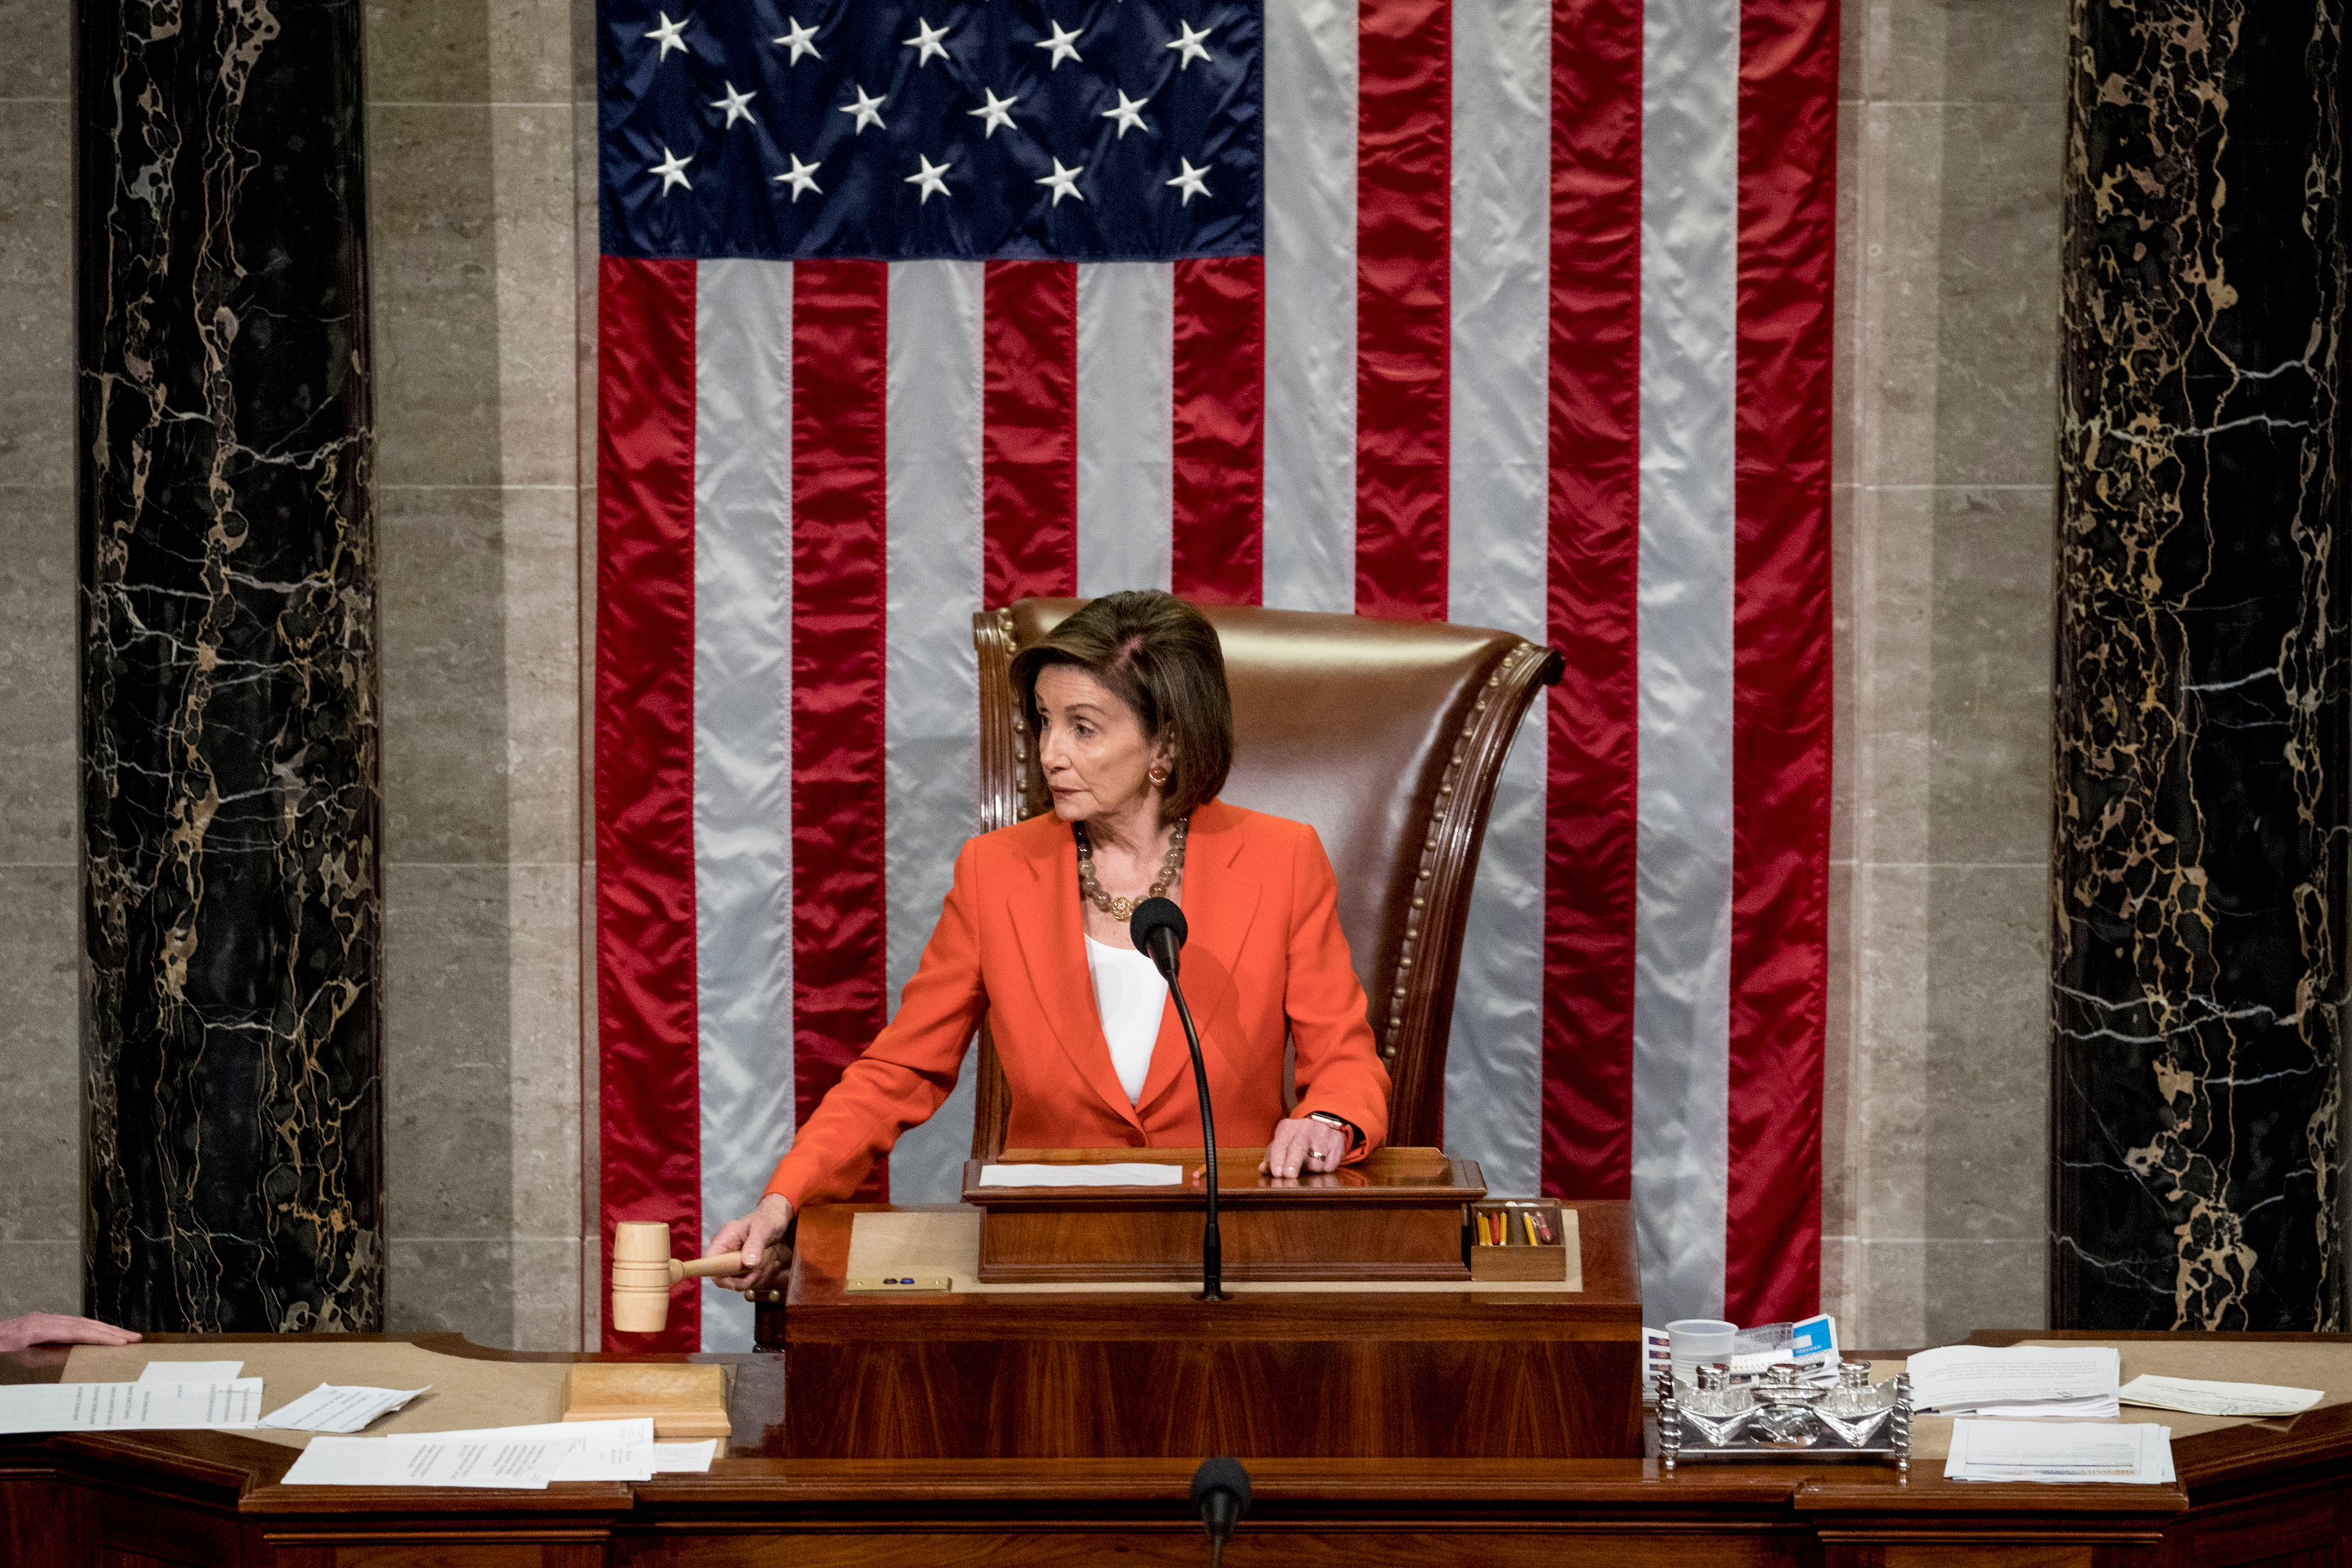 House Speaker Nancy Pelosi of Calif. gavels as the House votes 232-196 to pass resolution on impeachment procedure to move forward into the next phase of the impeachment inquiry into President Trump in the House Chamber on Capitol Hill in Washington, Thursday, Oct. 31, 2019.